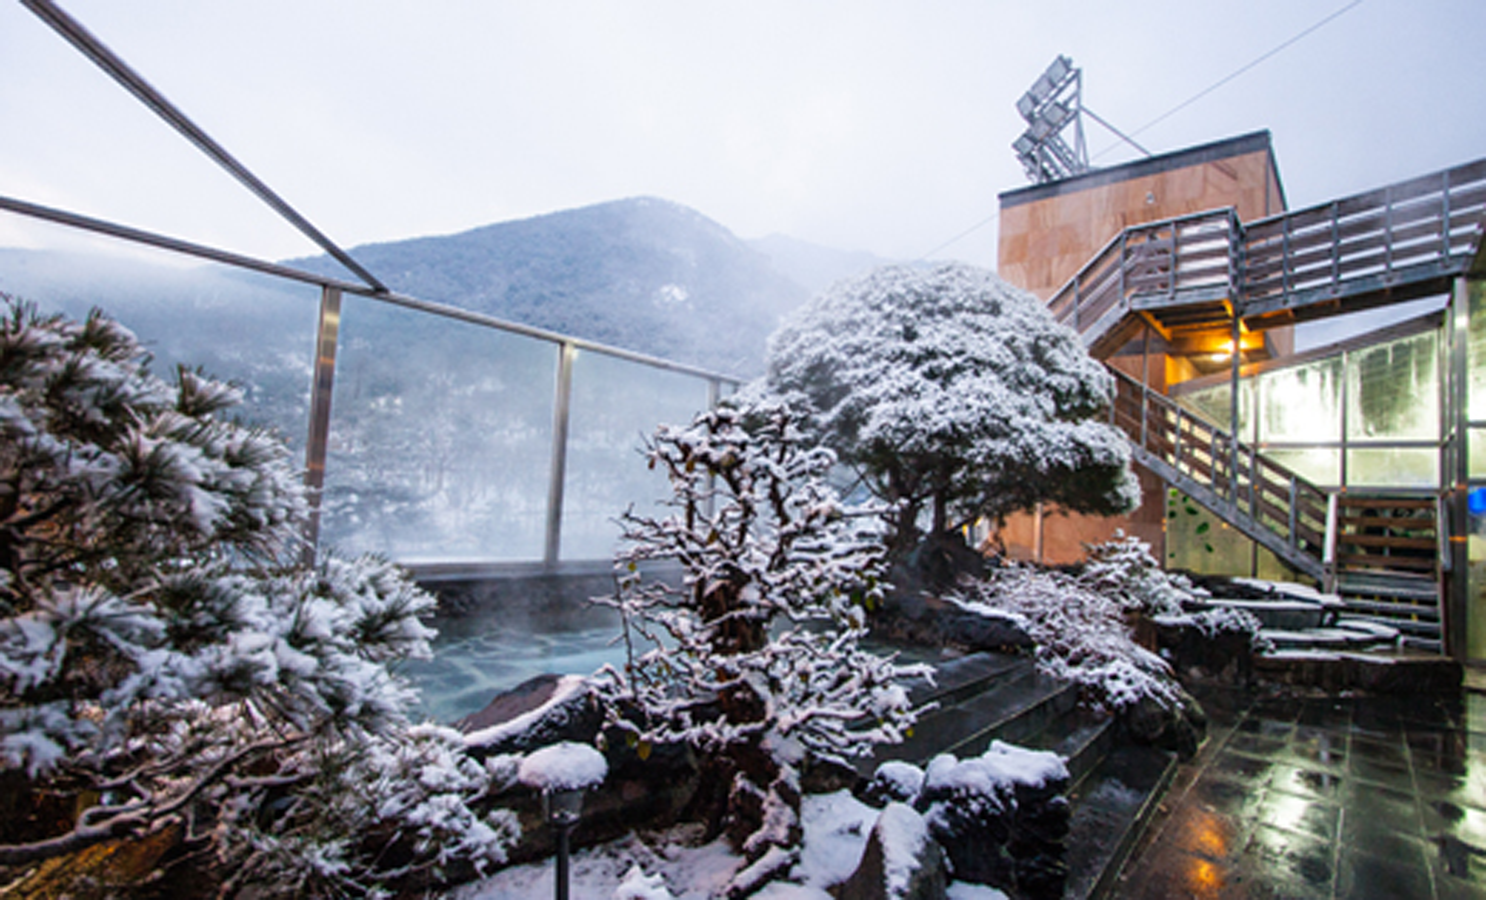 Outdoor hotspring and trees covered with snow in Spavalley